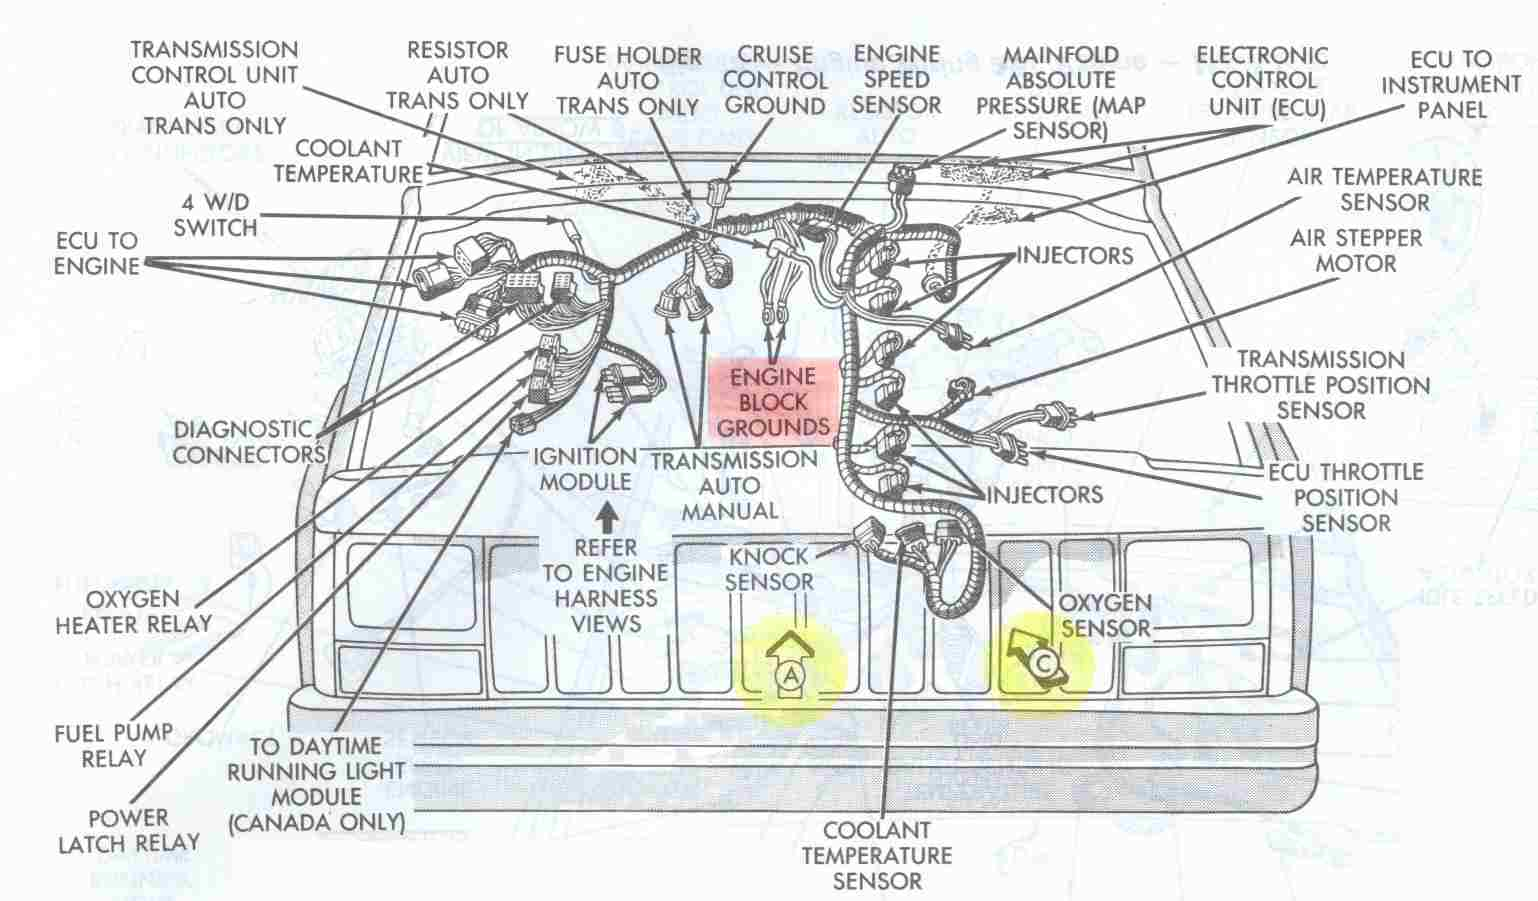 Electrical_Engine_Ground_Points_Overview jeep cherokee electrical diagnosing erratic behavior of engine 2000 jeep cherokee engine wiring harness at alyssarenee.co